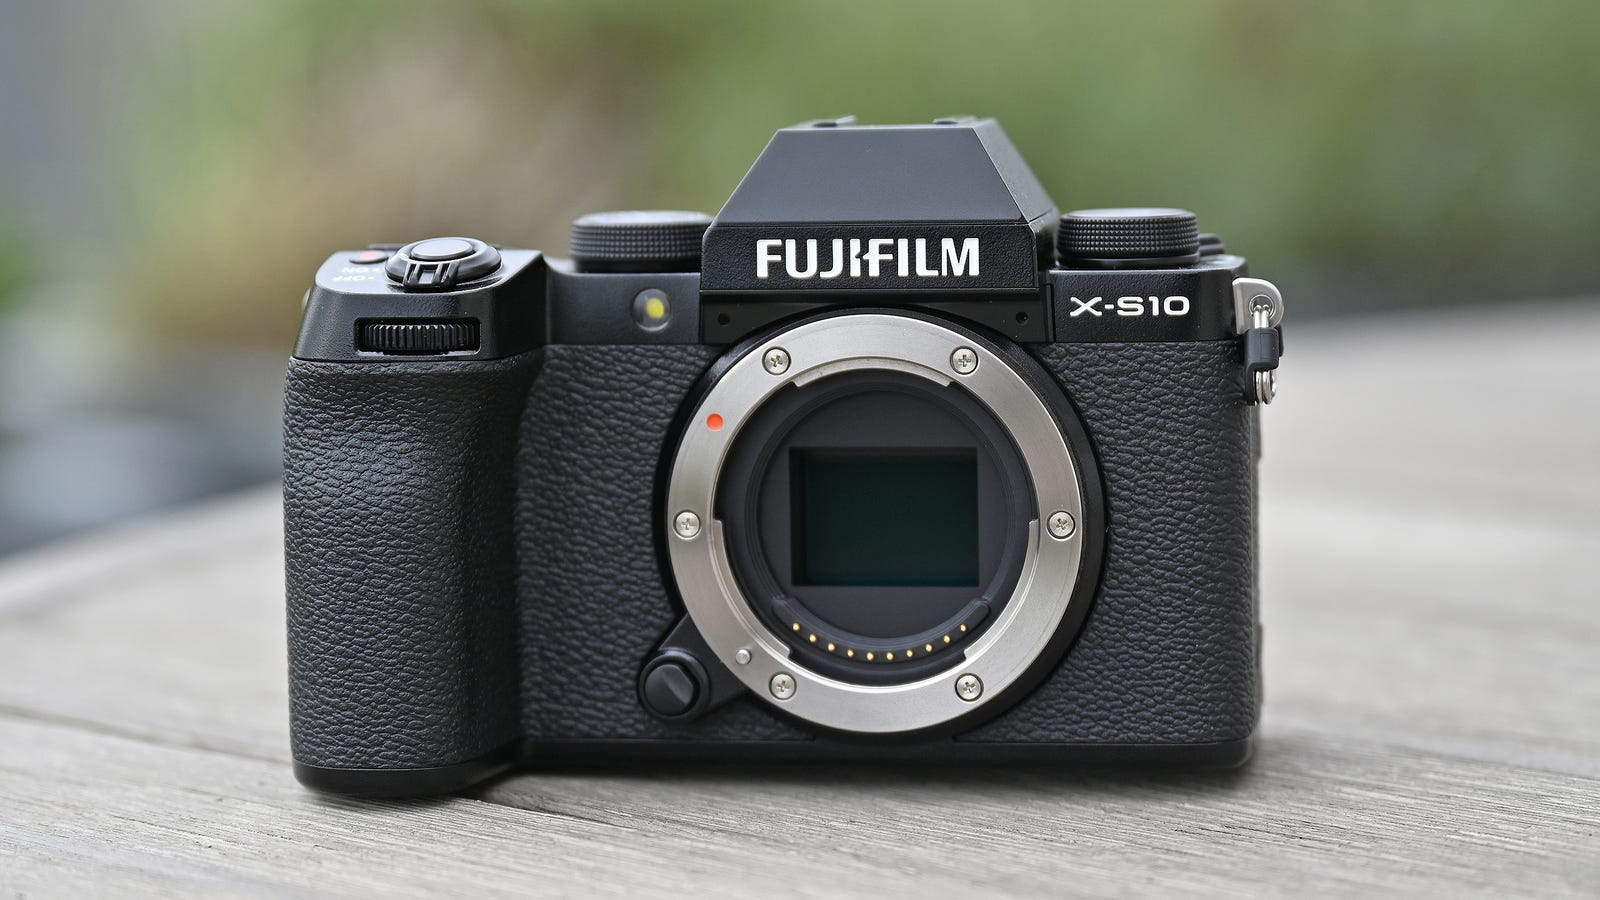 Click through for more hands-on photos of the Fujifilm X-S10.